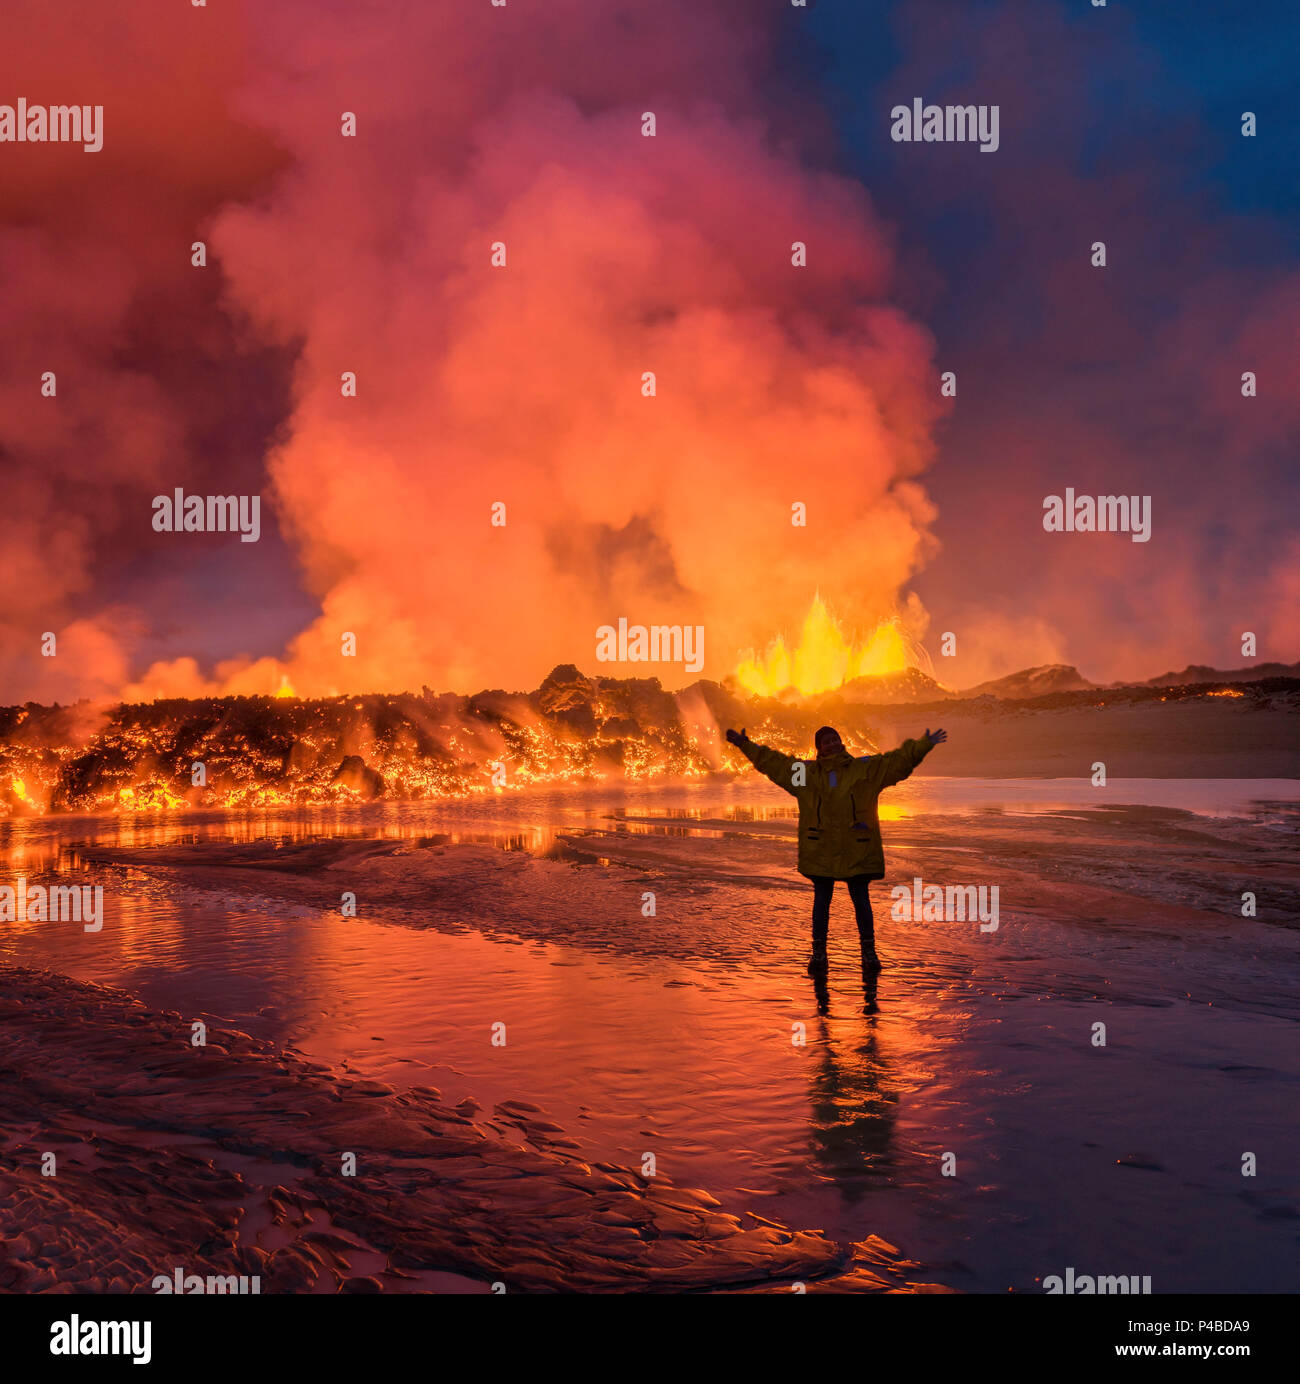 Woman standing by glowing lava. August 29, 2014, a fissure eruption started in Holuhraun at the northern end of a magma intrusion, which had moved progressively north, from the Bardarbunga volcano. Bardarbunga is a stratovolcano located under Vatnajokull, Icelands most extensive glacier. Picture date- Sept 2, 2014 - Stock Image